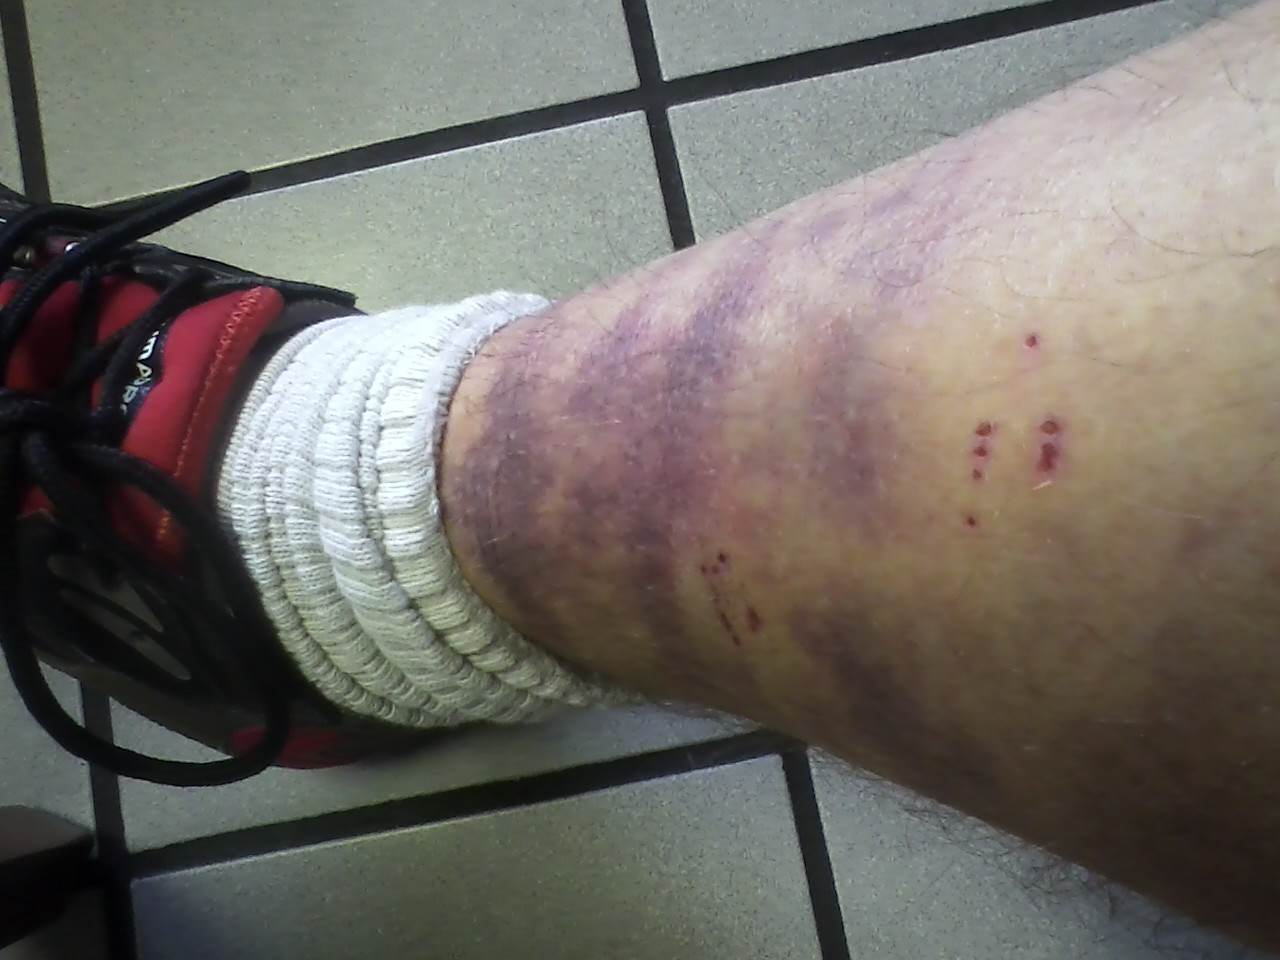 Image of badly bruised shin